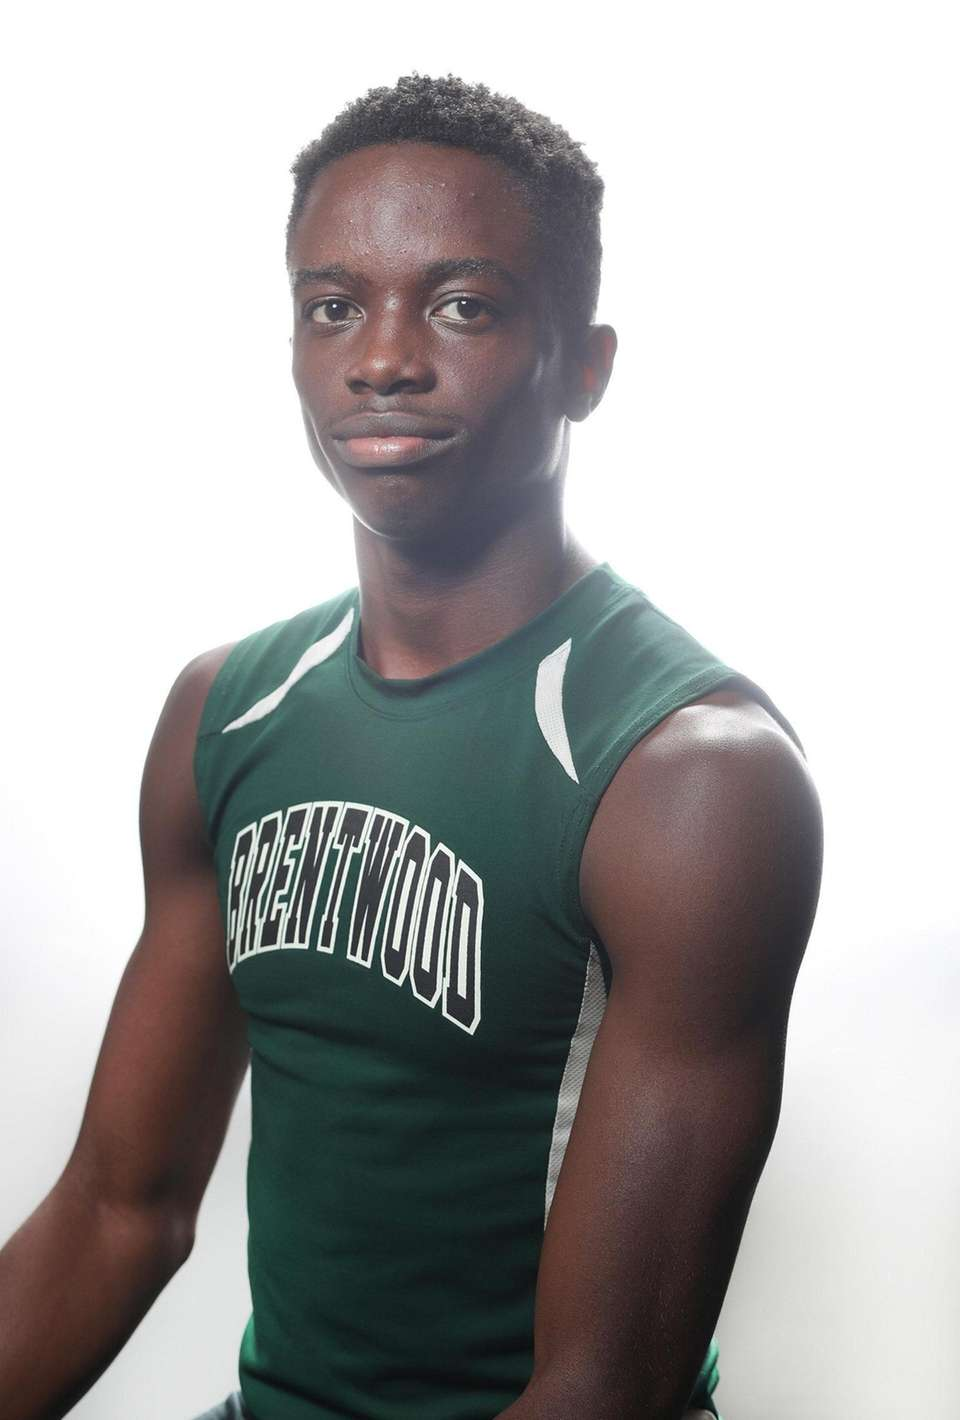 Boys Track - Frank Grey, Brentwood High School